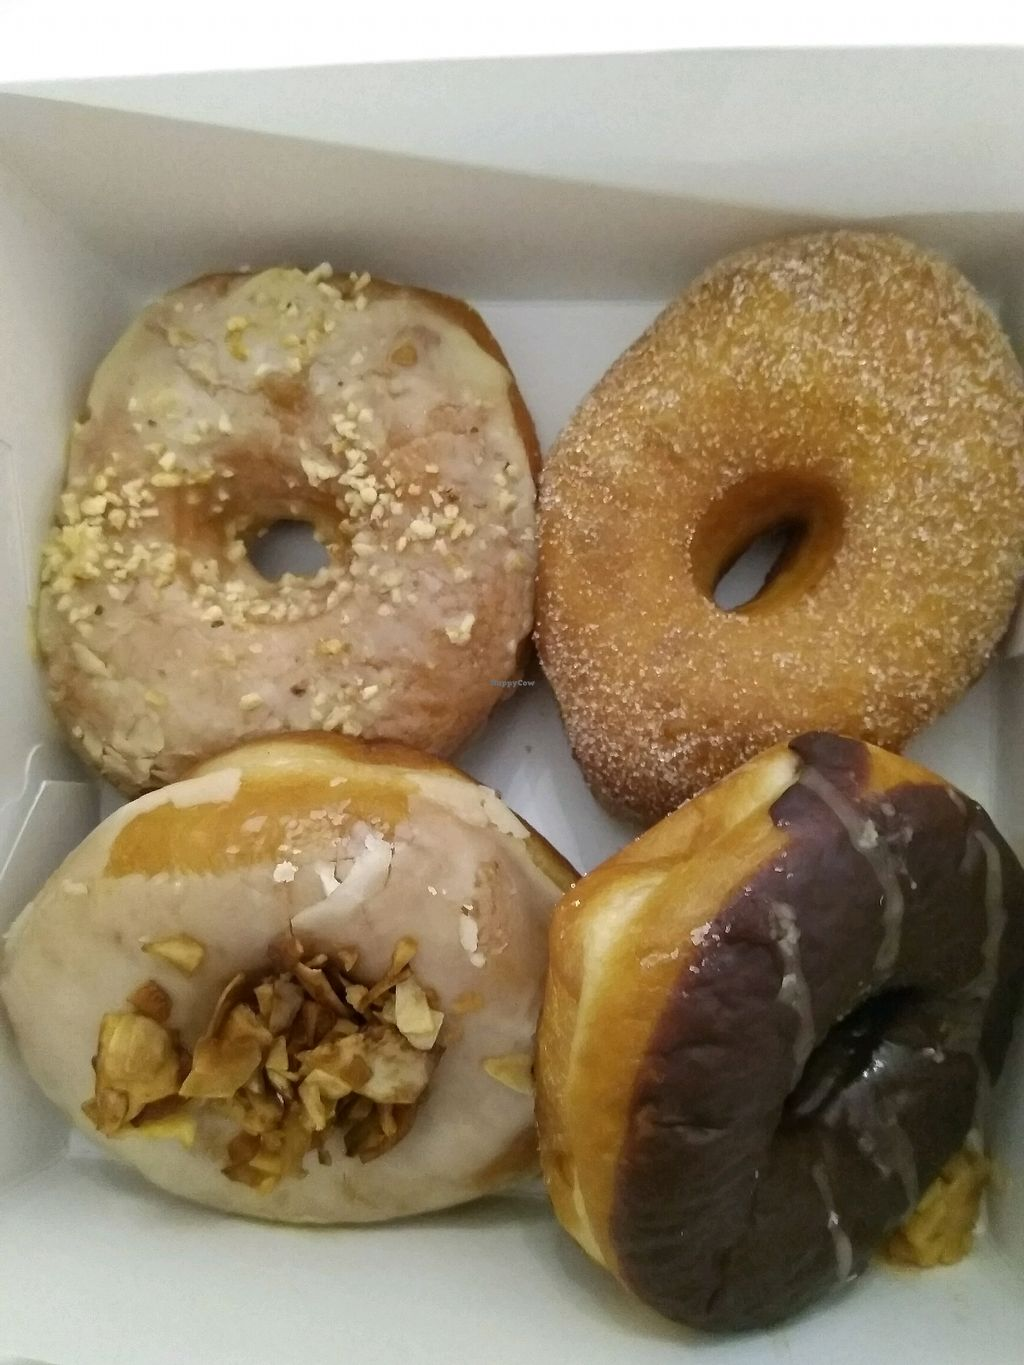 """Photo of Brammibal's Donuts - Maybachufer  by <a href=""""/members/profile/Zjef"""">Zjef</a> <br/>surprise box <br/> April 15, 2018  - <a href='/contact/abuse/image/65783/386164'>Report</a>"""